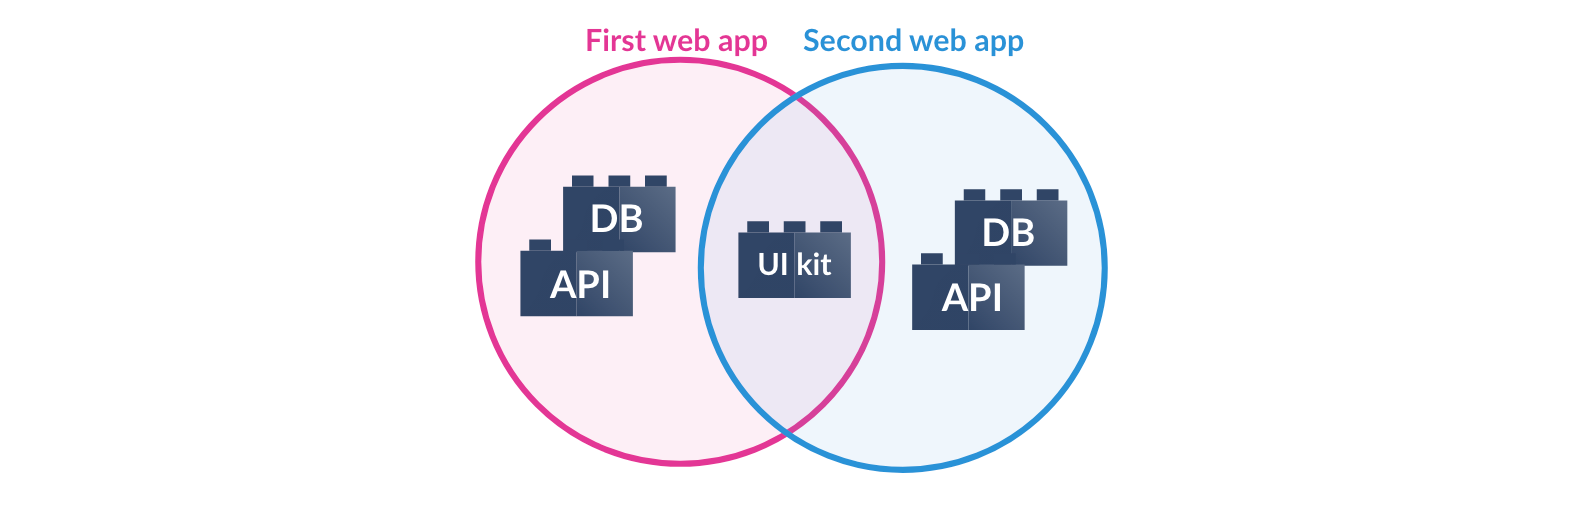 Apps are created from components that can be shared across